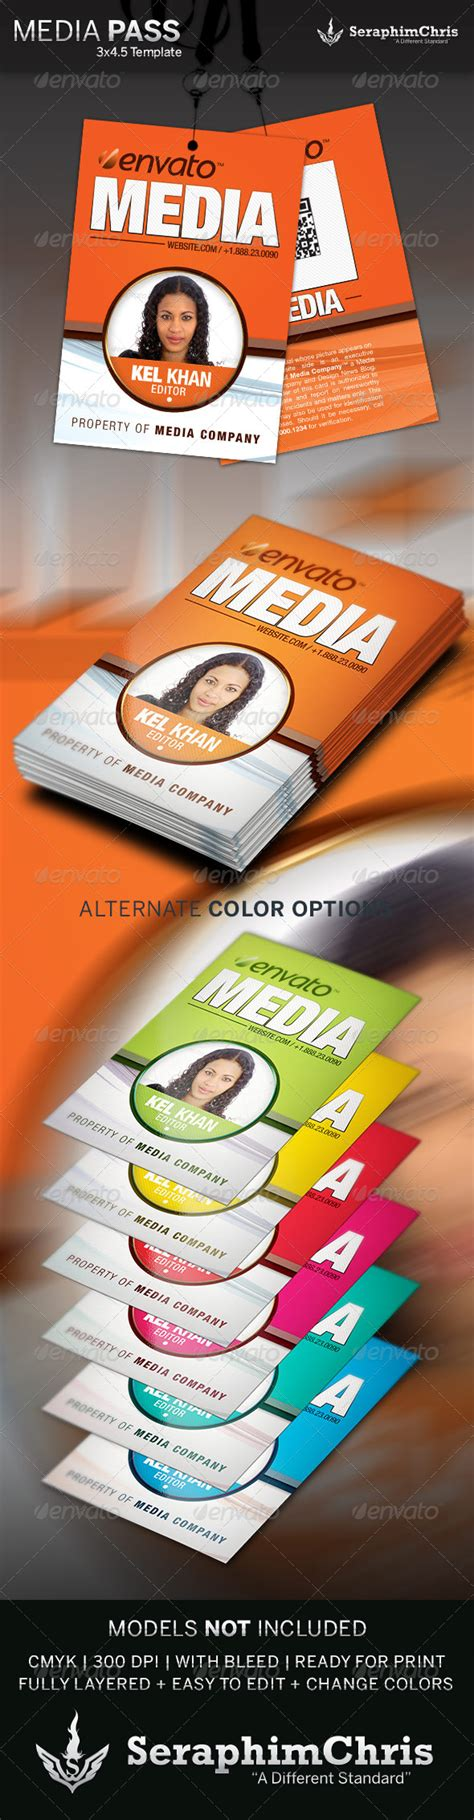 Media Pass Template Graphicriver Media Pass Template Photoshop